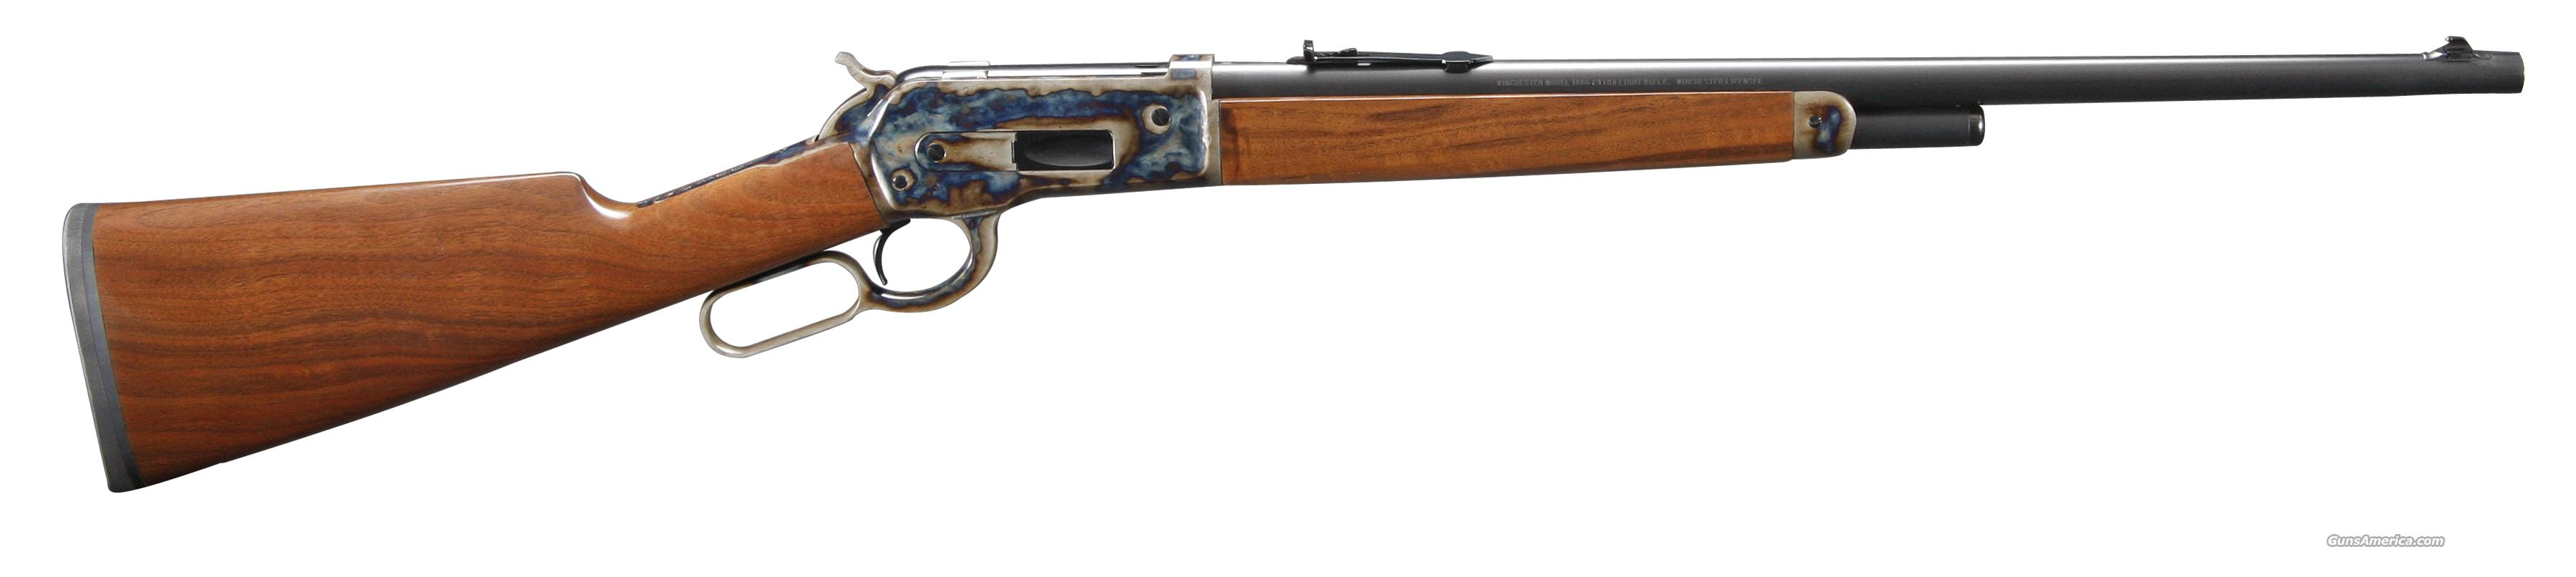 Winchester/USRAC Model 1886 XLW - Finishes by Turnbull  Guns > Rifles > Winchester Rifles - Modern Lever > Other Lever > Post-64